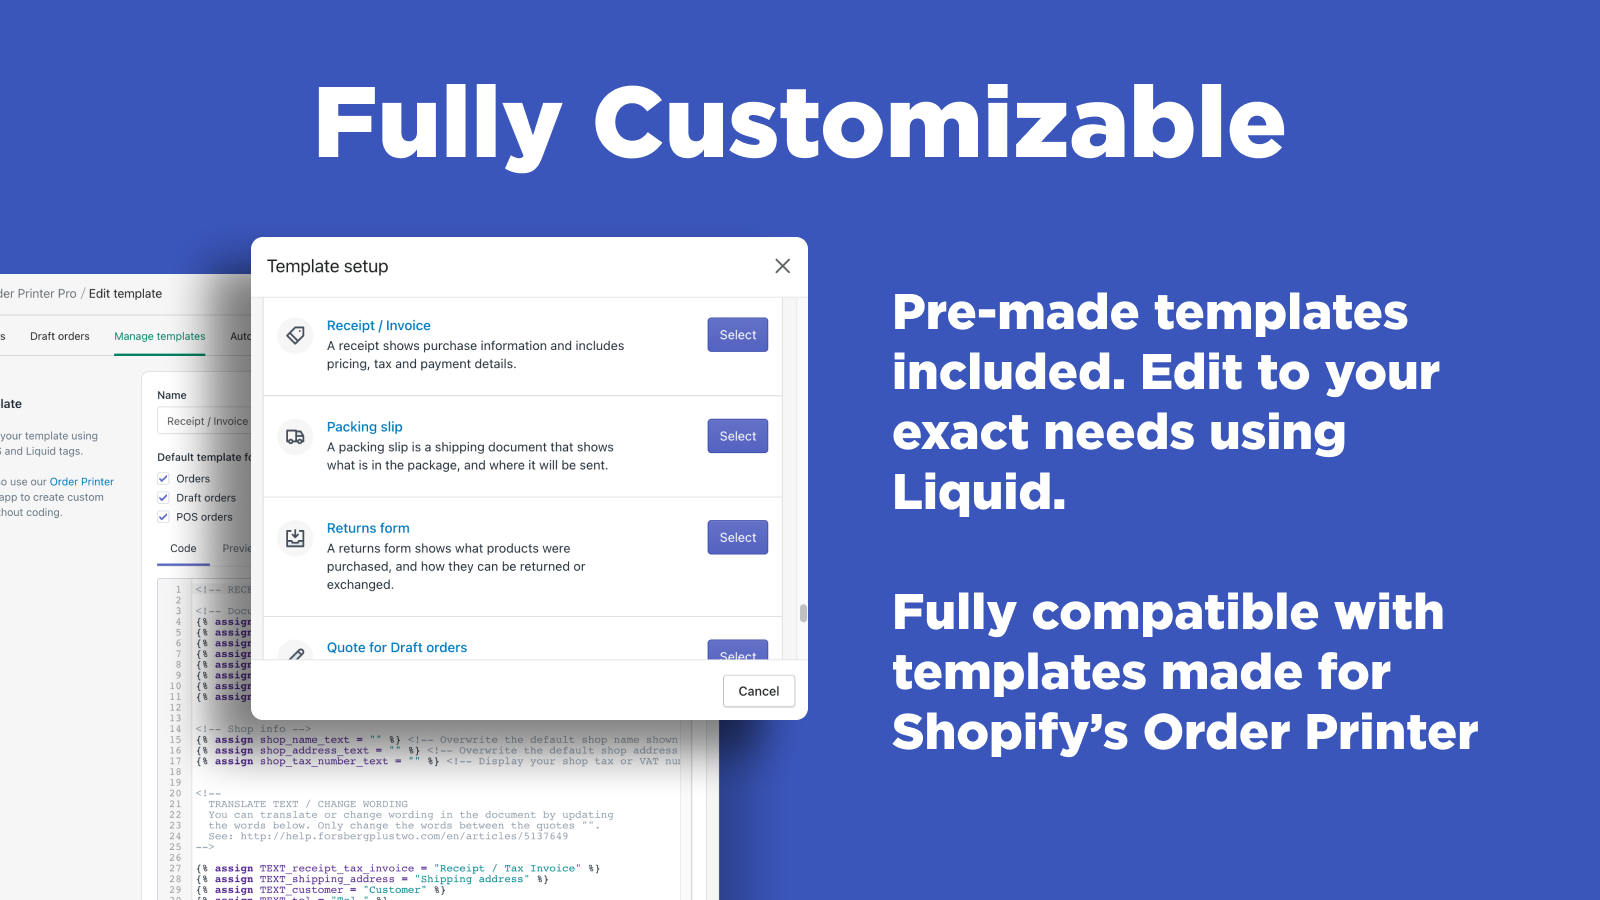 Shopify Order Printer - Fully customizable templates